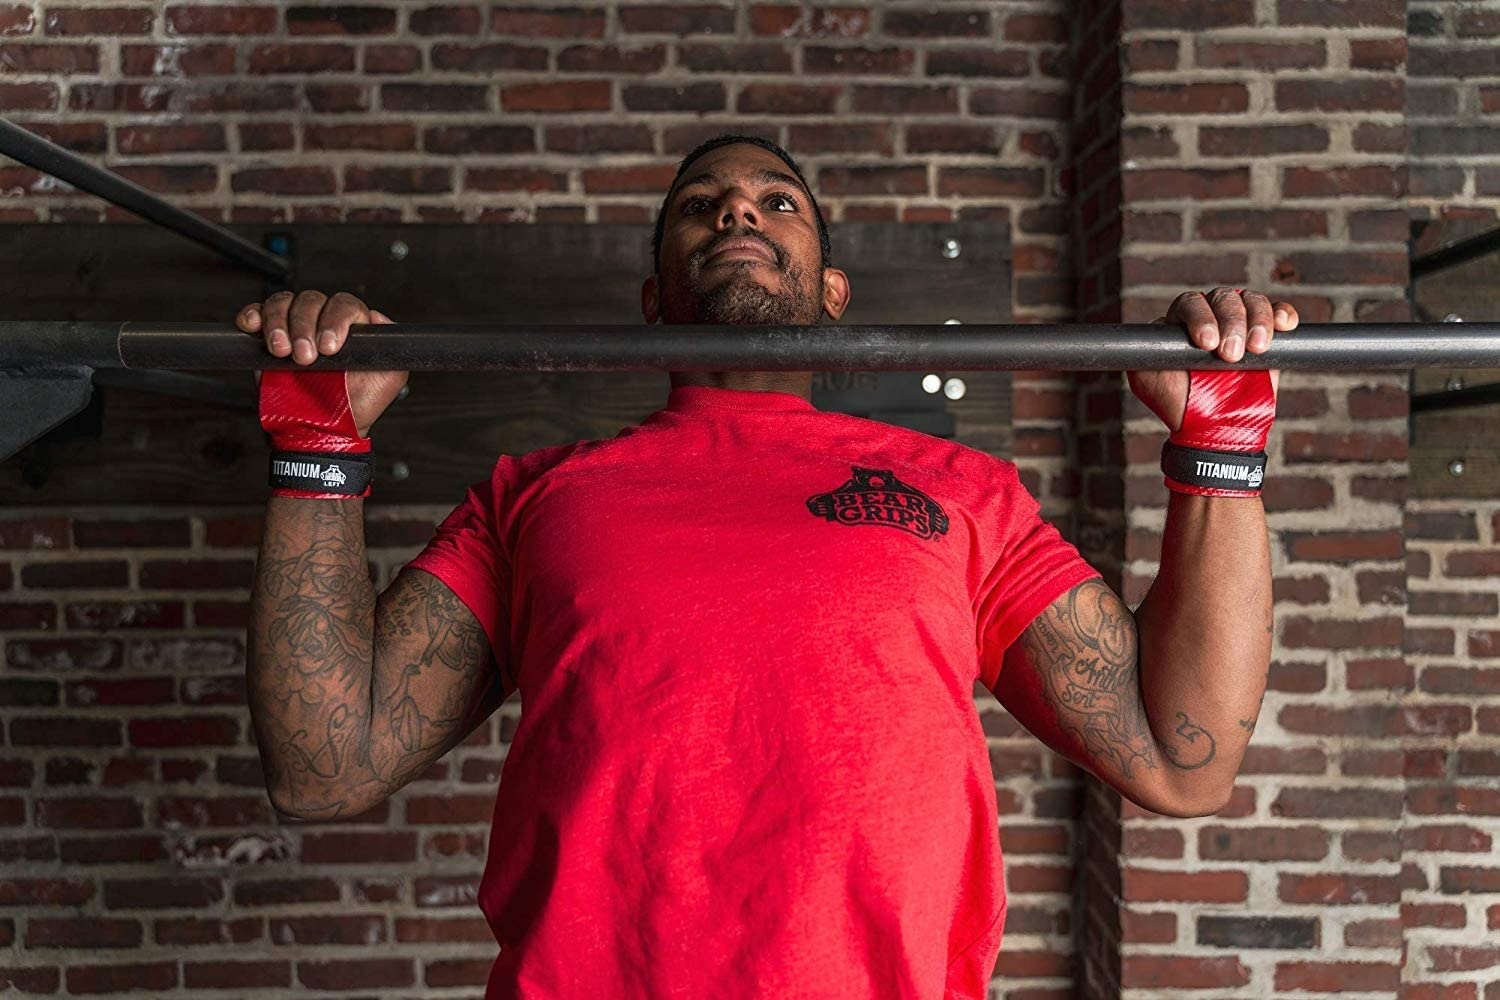 Pull ups Gymnastic Movements Olympic Lifting Made for Crossfit WOD T2B Color: Red Bear Grips Two Hole Titanium Gymnastics Hand Grip 60/% Thinner /& 10X Stronger Than Carbon Fiber Grips Size XS-XL